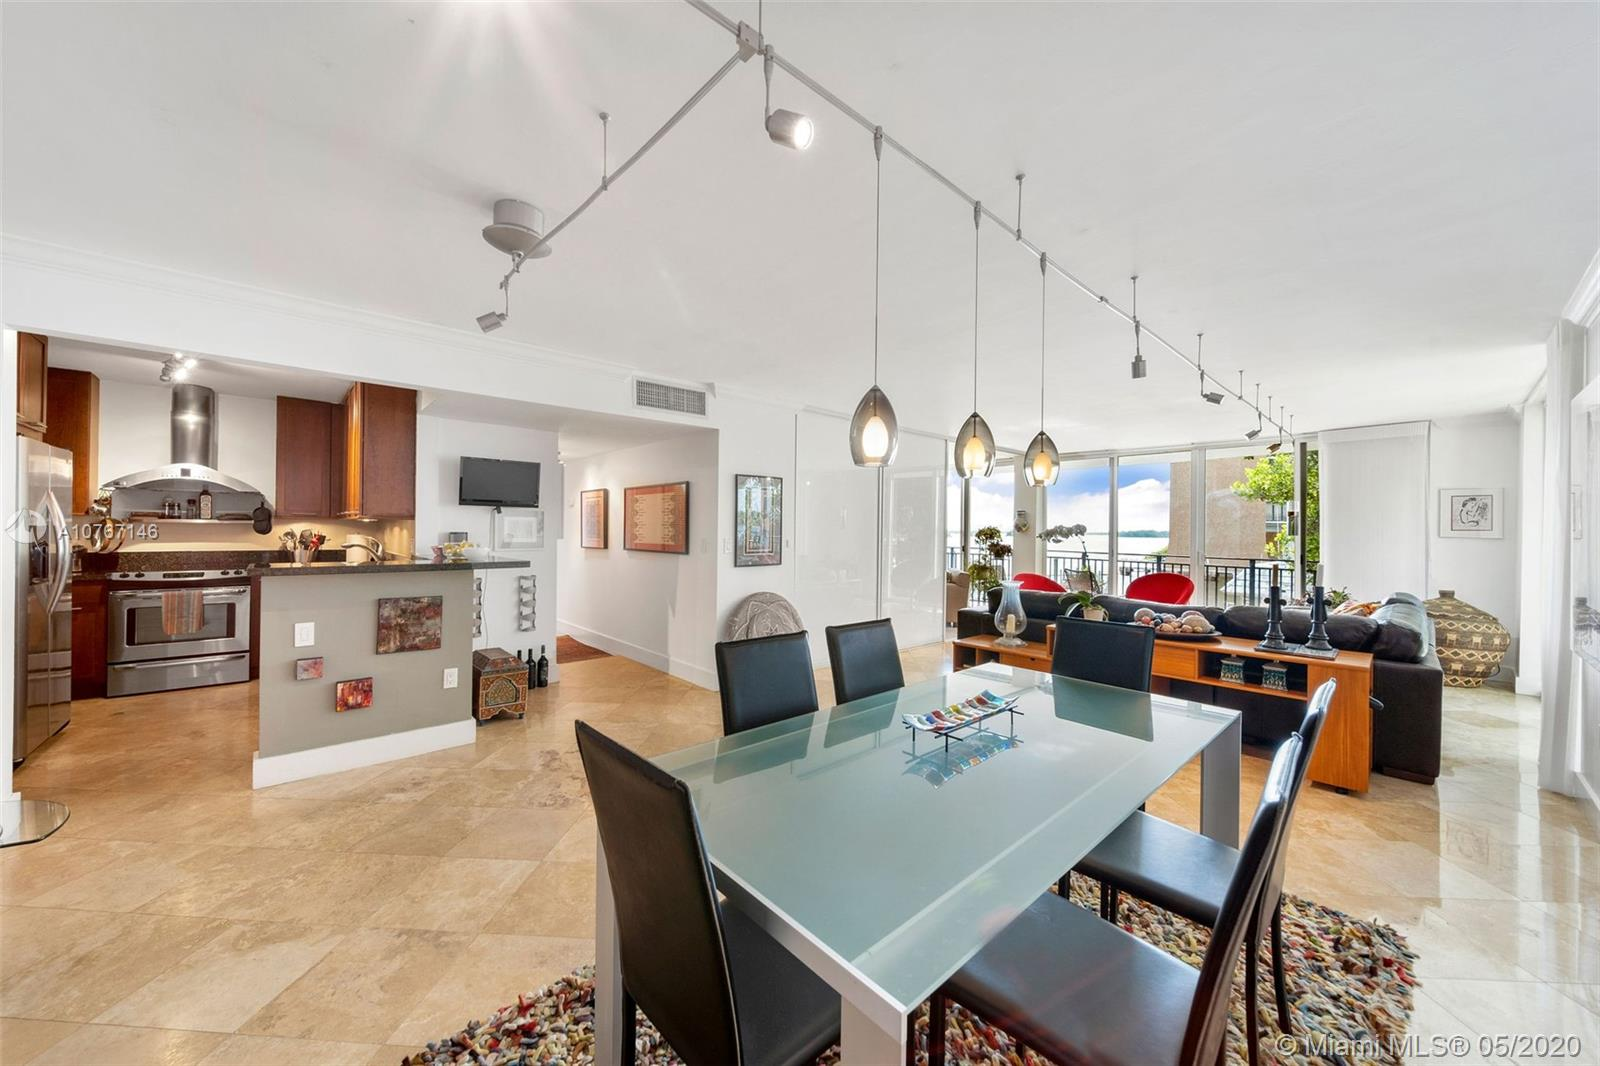 770 NE 69th St # 2A, Miami, Florida 33138, 2 Bedrooms Bedrooms, ,2 BathroomsBathrooms,Residential,For Sale,770 NE 69th St # 2A,A10767146